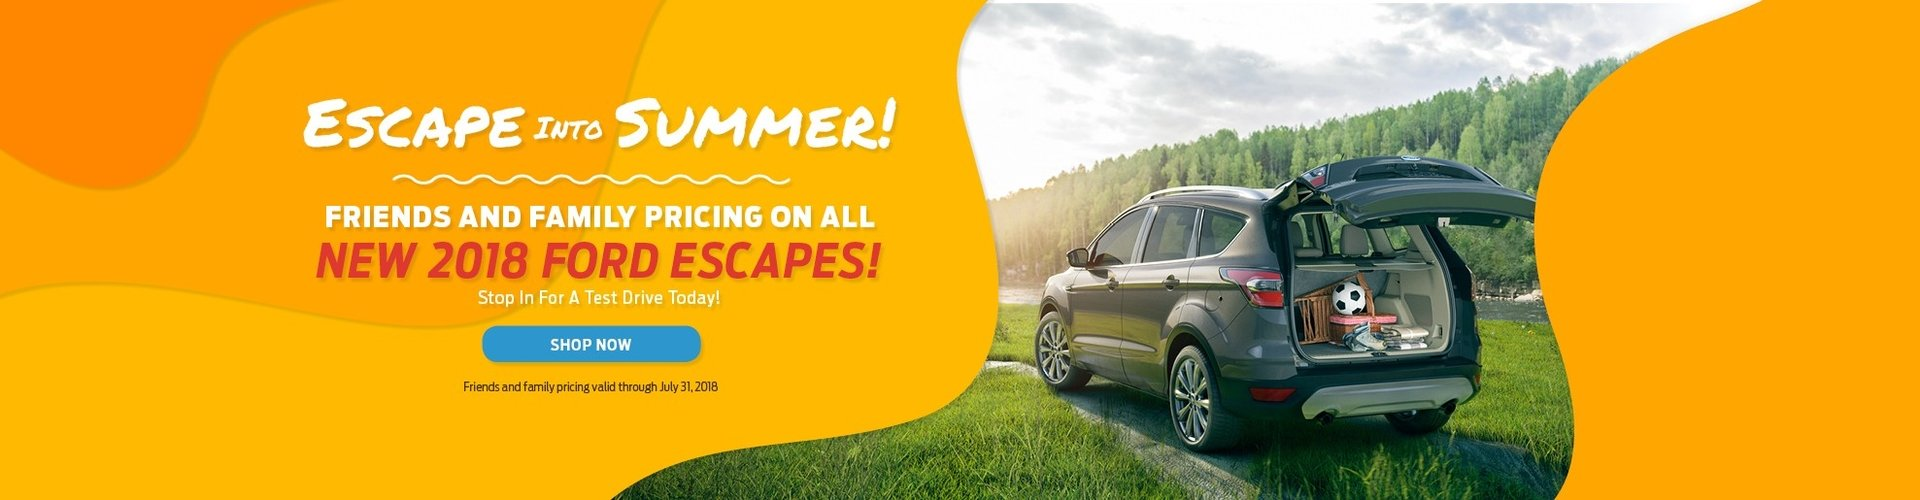 2018 Ford Escape Friends and Family Pricing